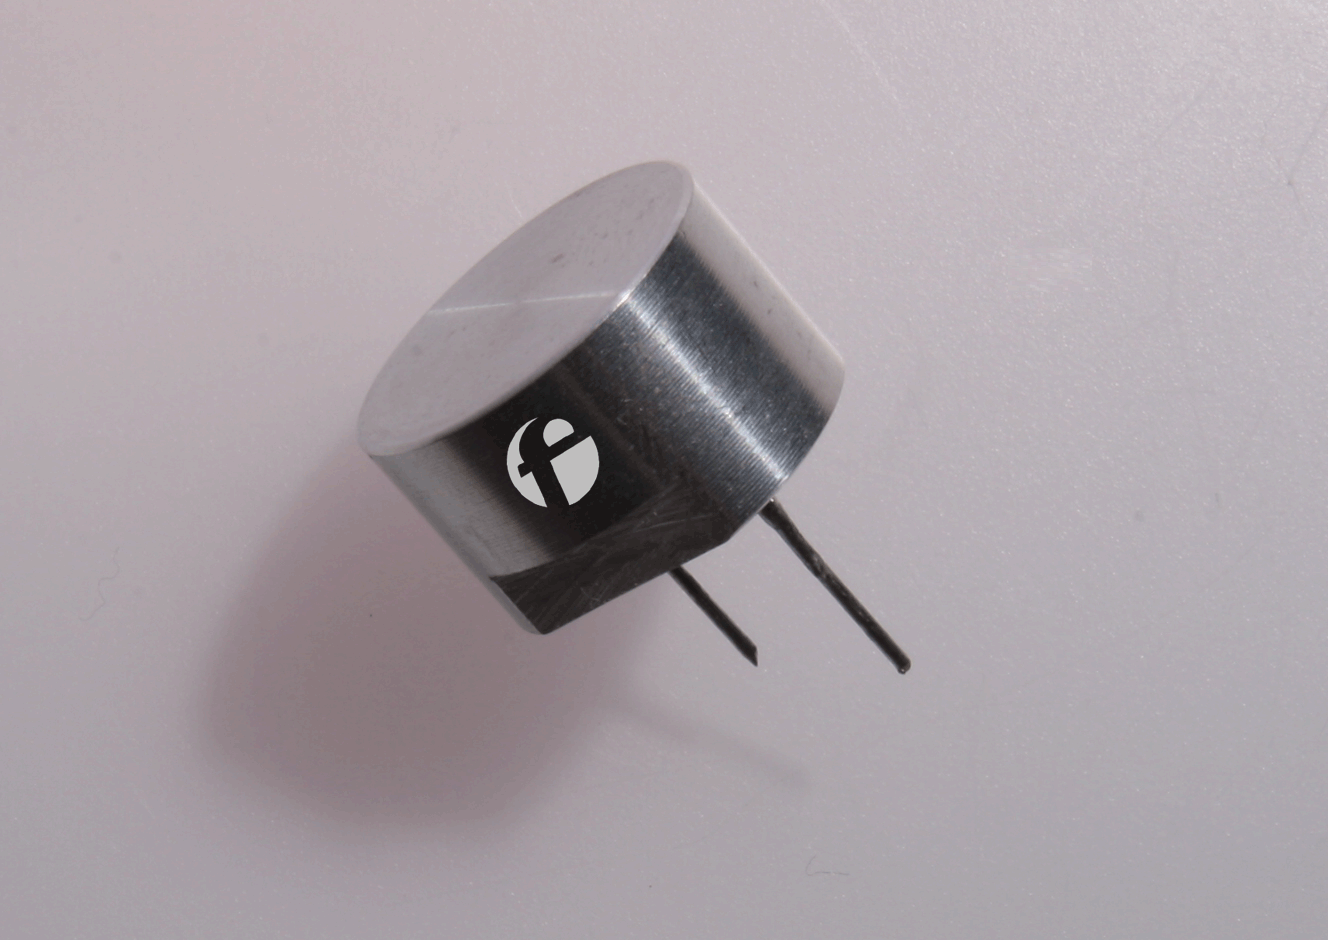 Flezon Asymmetric Ultrasonic Sensor